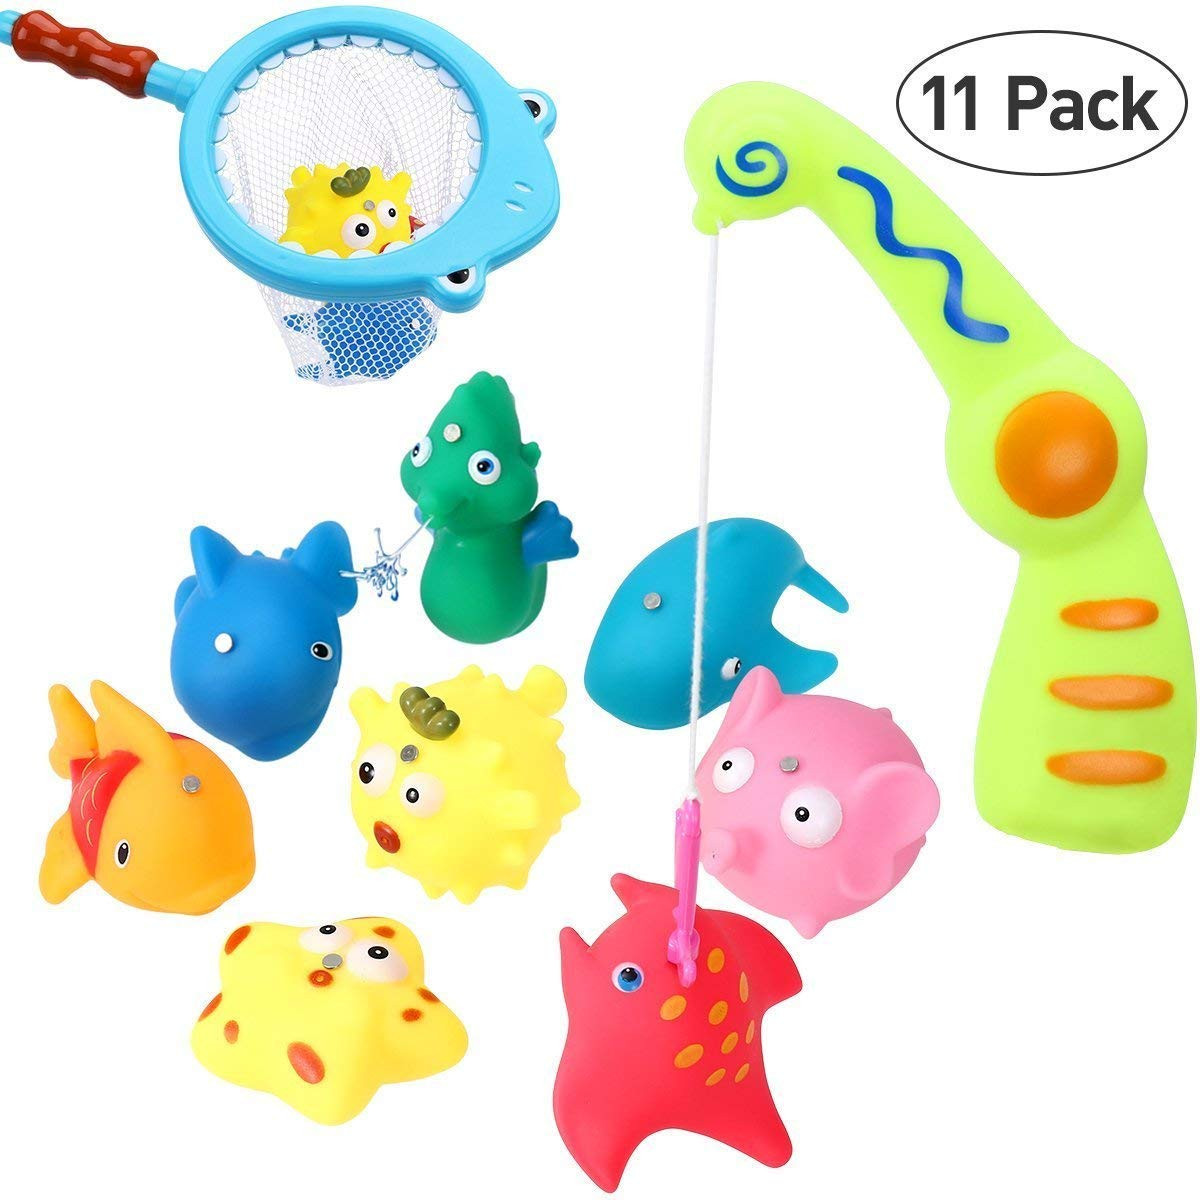 iBaseToy Bath Fishing Toy - Catch Cute Fish in the Tub with Magnetic Fishing Rod - Includes 8 Squirts Fish, Fishing Rod, Net and Storage Bag .